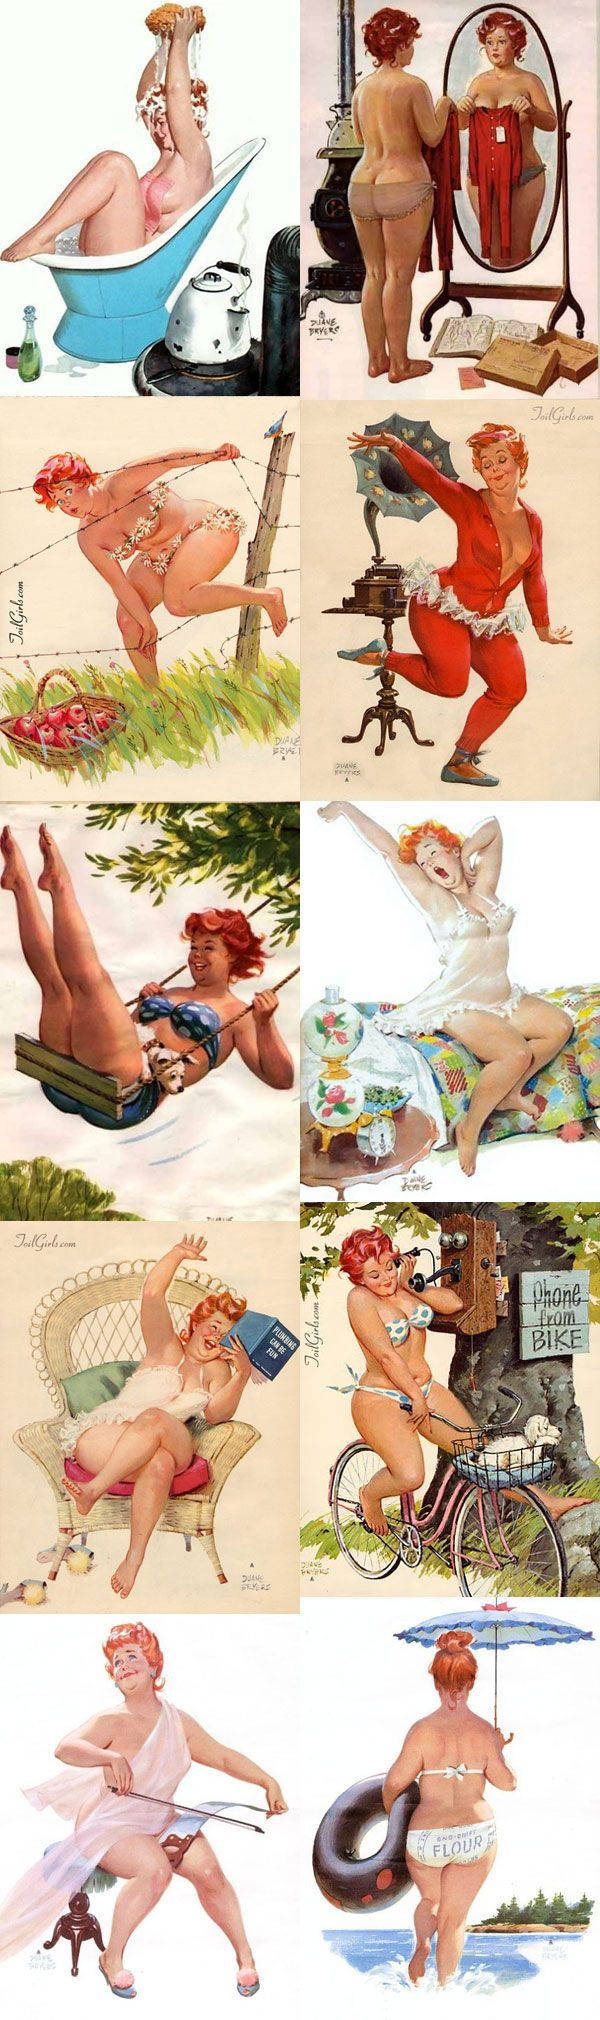 Duane-Bnryers-hilda-pinup-vintage-fofinha. Hilda... our original Plus Size Pinup... 40's era men liked big legs and hips... they knew what hot was....I love these!